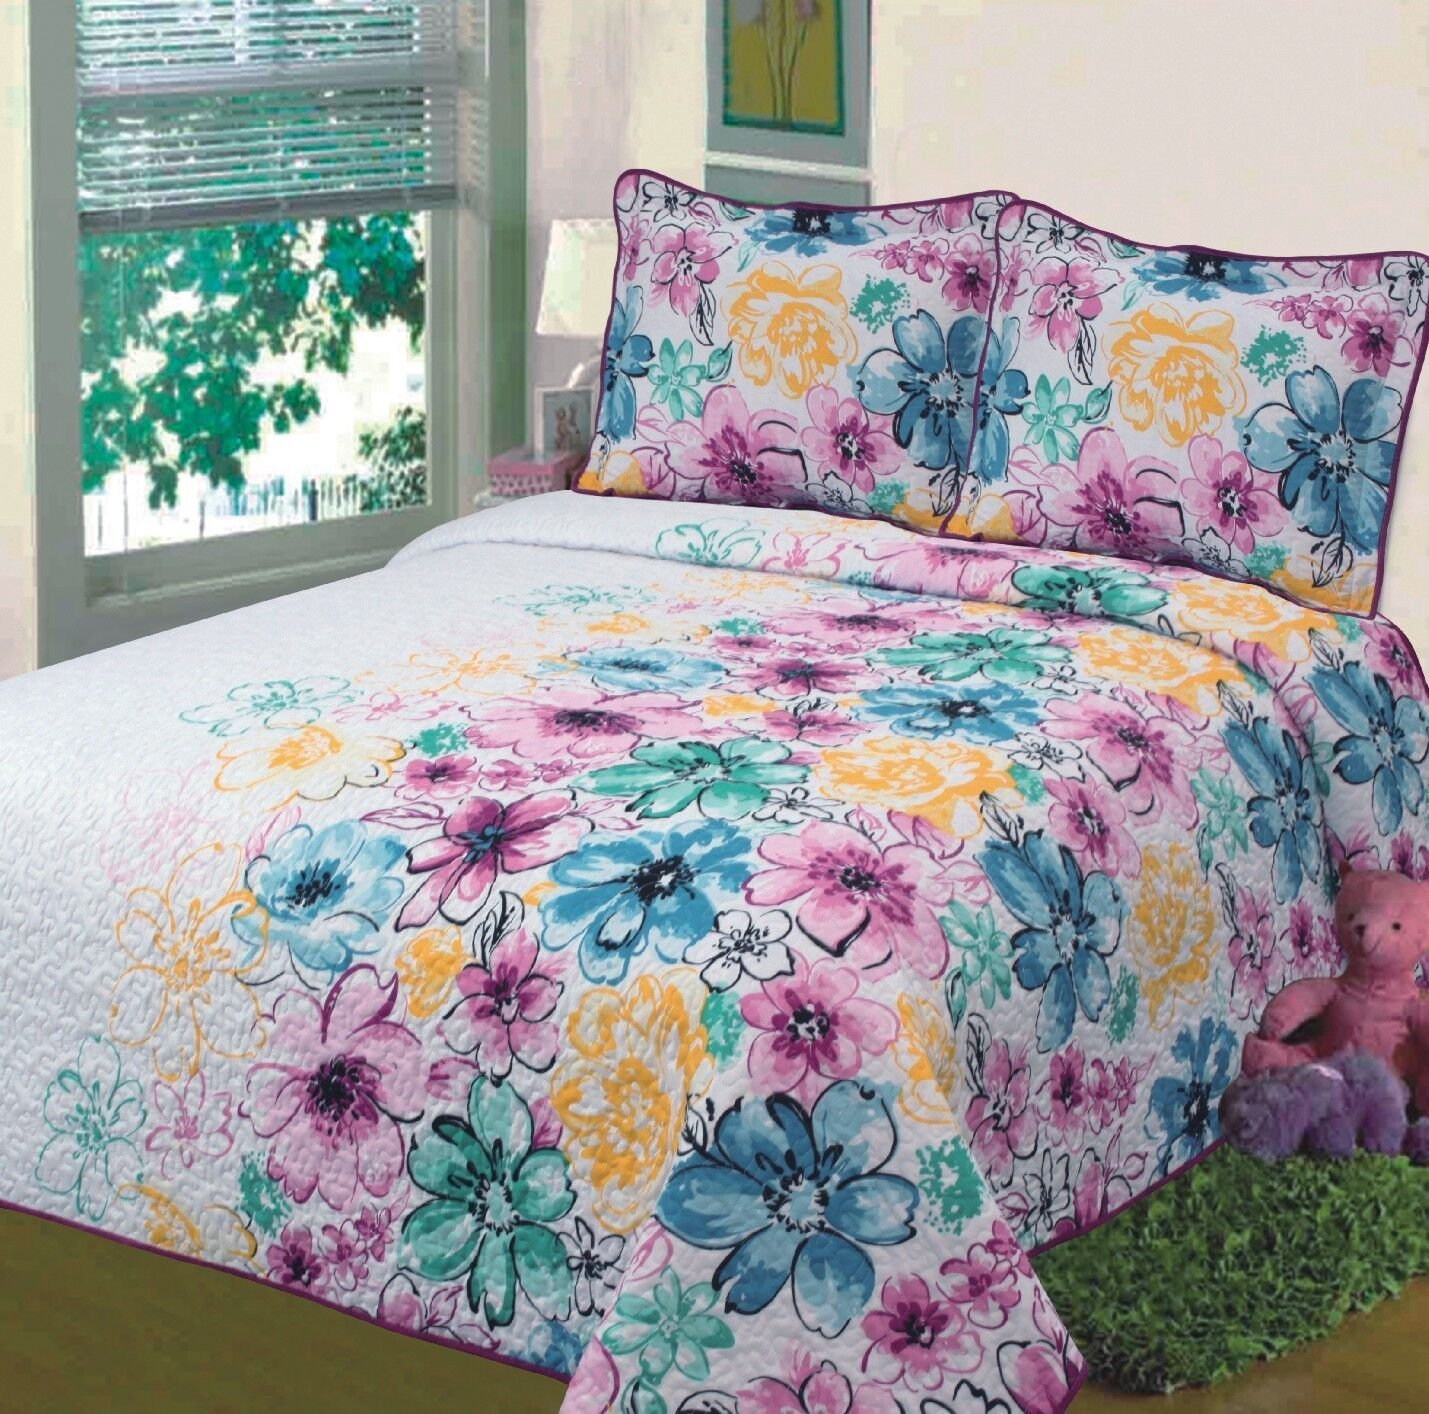 Fancy Collection 3pc Bedspread Bed Cover Floral Off White Yellow Pink Blue Green/teal Floral New 0043 (California King) COMIN18JU008251